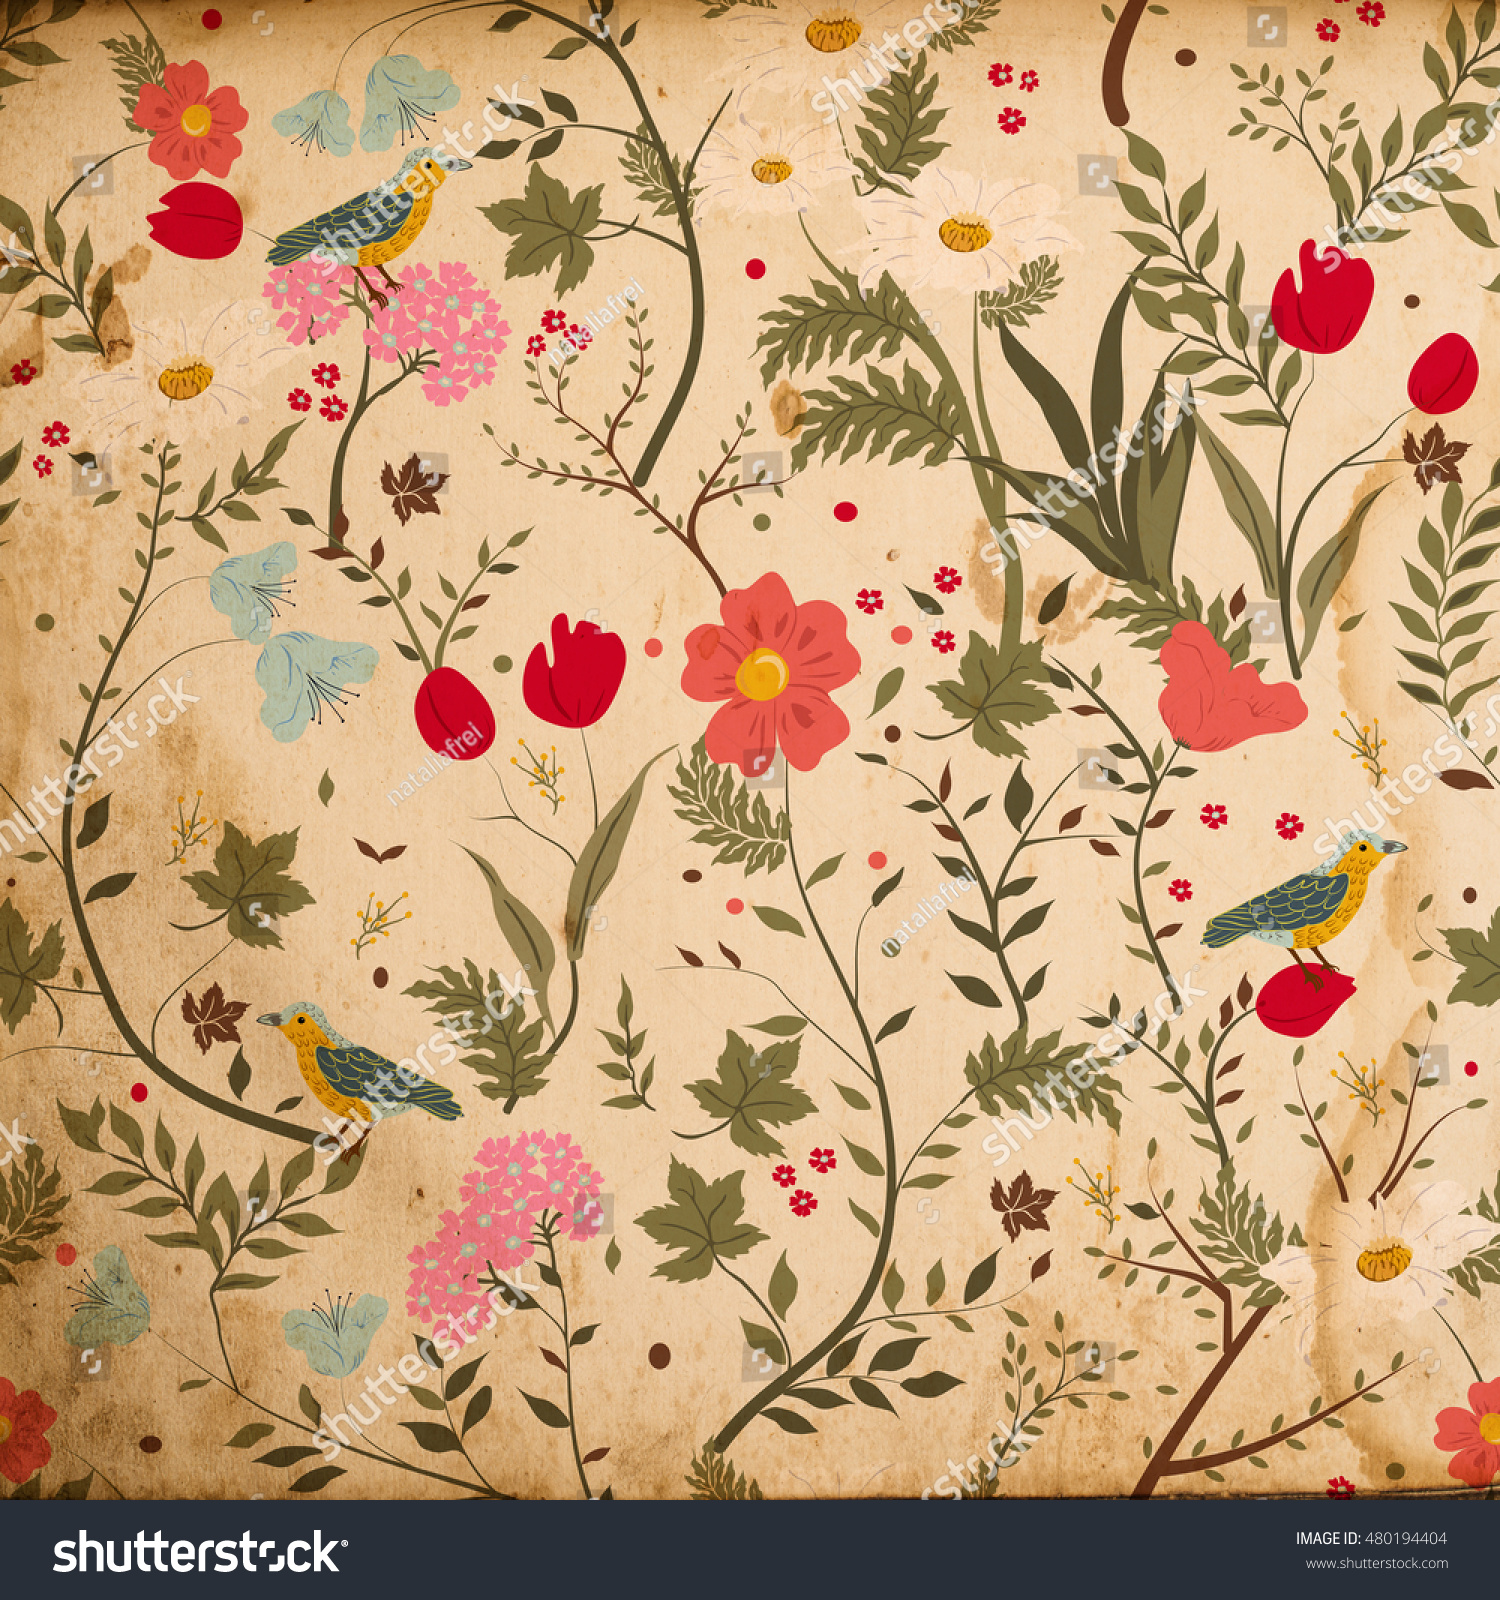 Antique Floral Vintage Wallpaper Background Stock Illustration